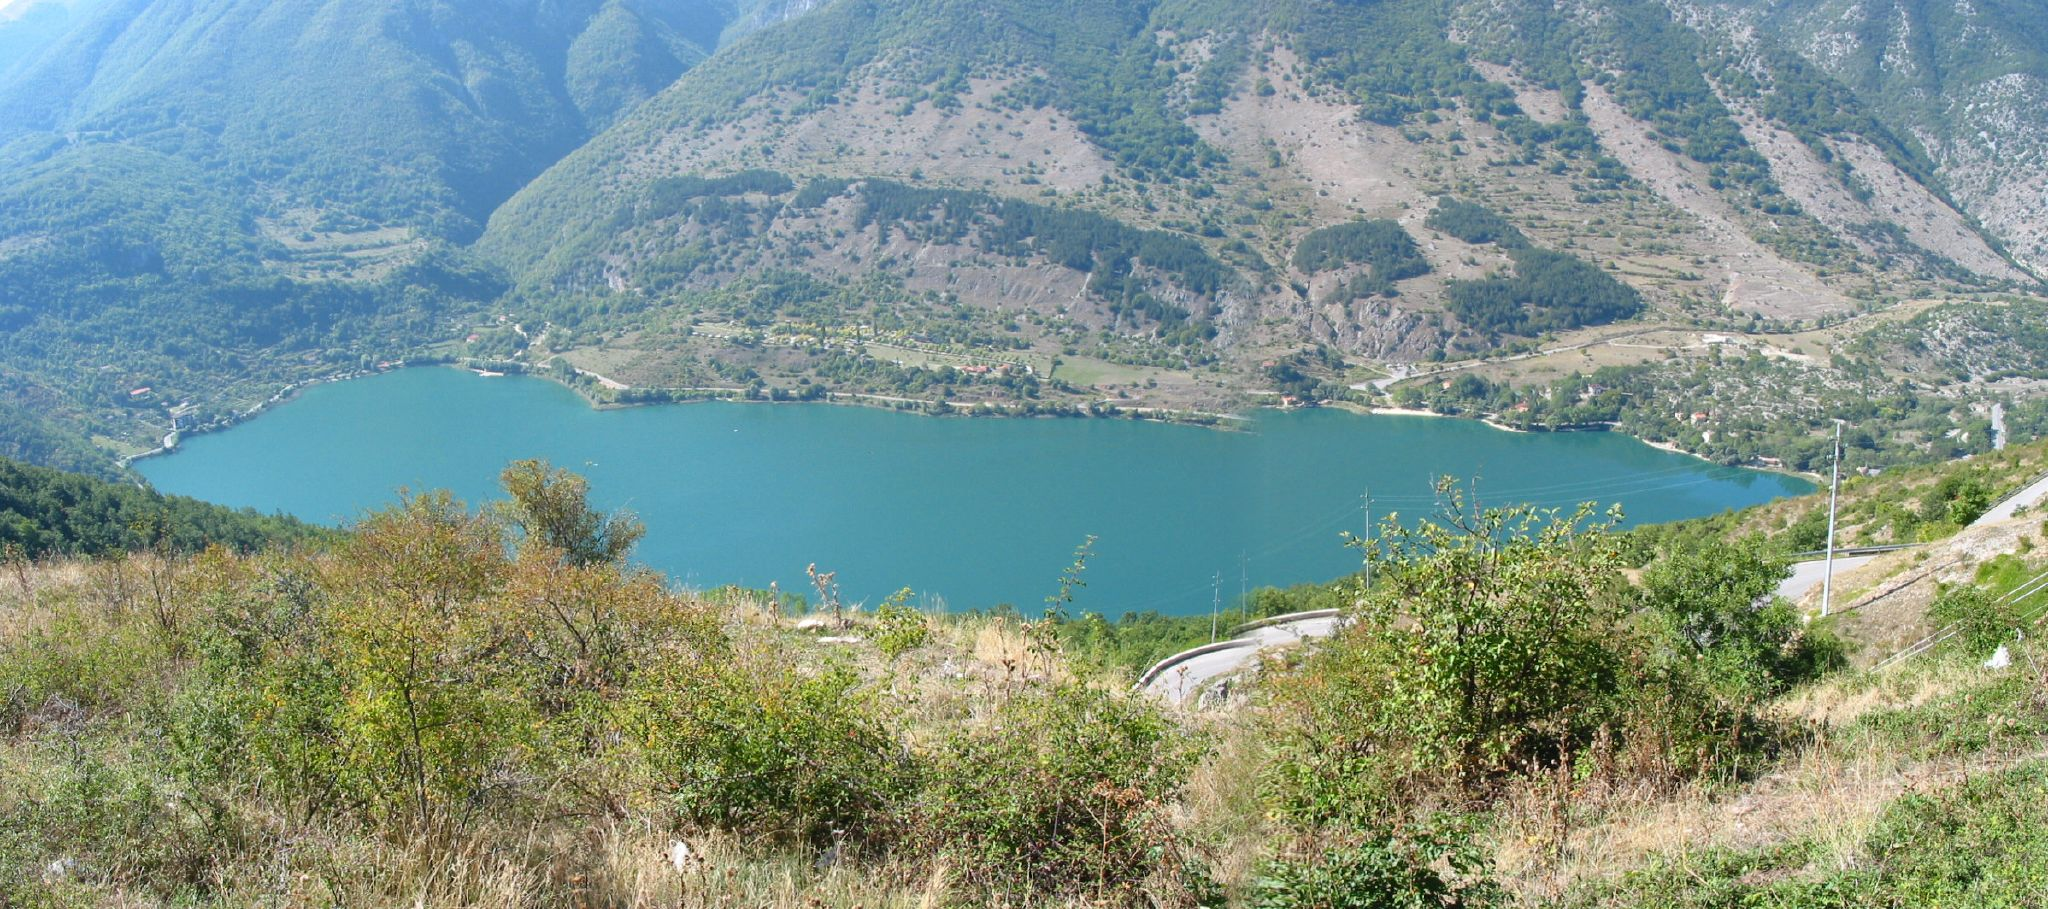 Datei:Lago di scanno01.jpg – Wikipedia